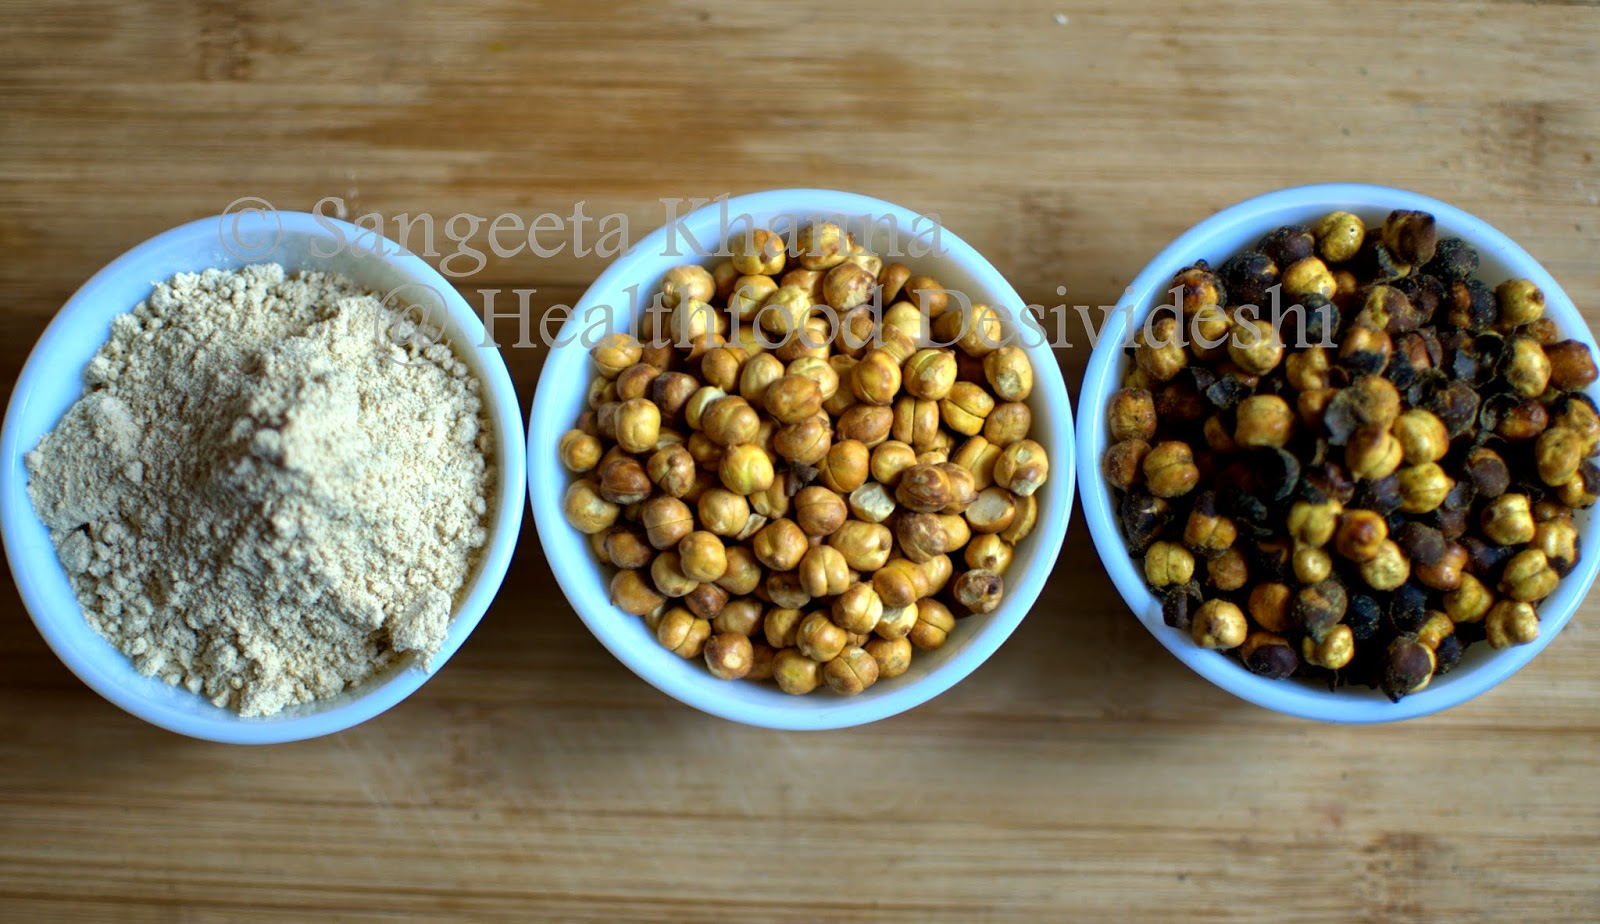 sattu or roasted chickpea flour